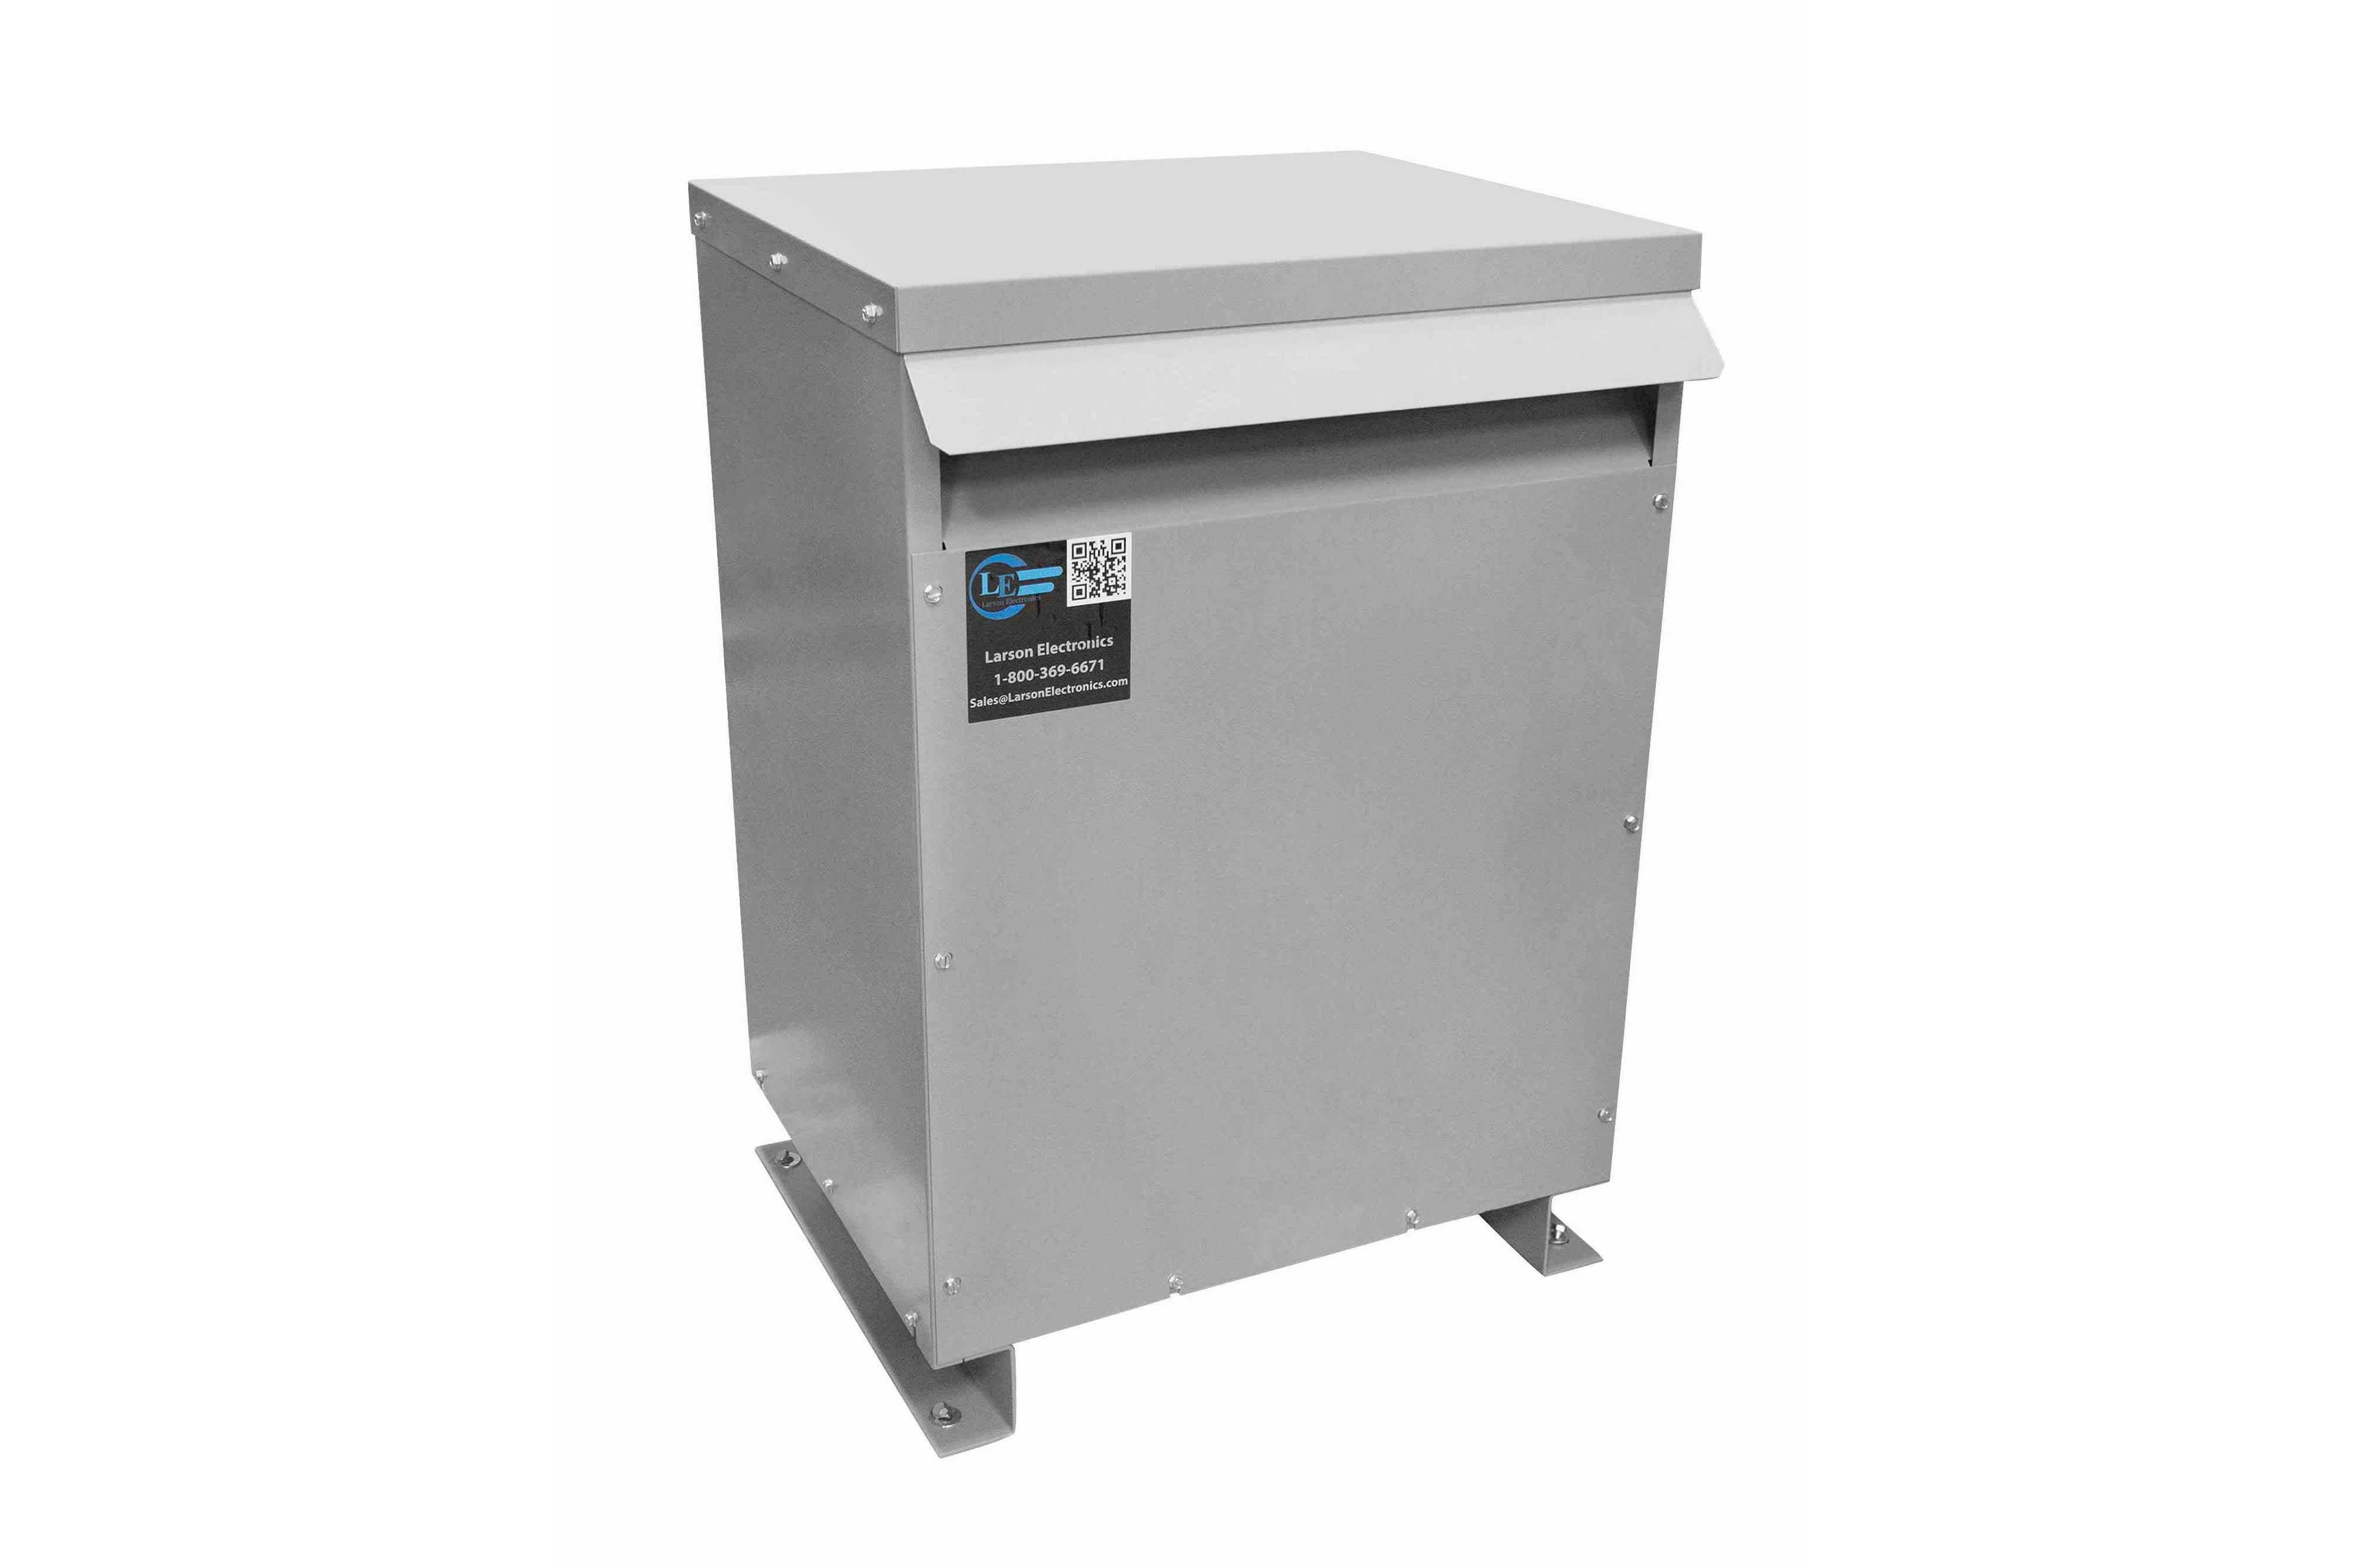 14 kVA 3PH Isolation Transformer, 208V Delta Primary, 480V Delta Secondary, N3R, Ventilated, 60 Hz